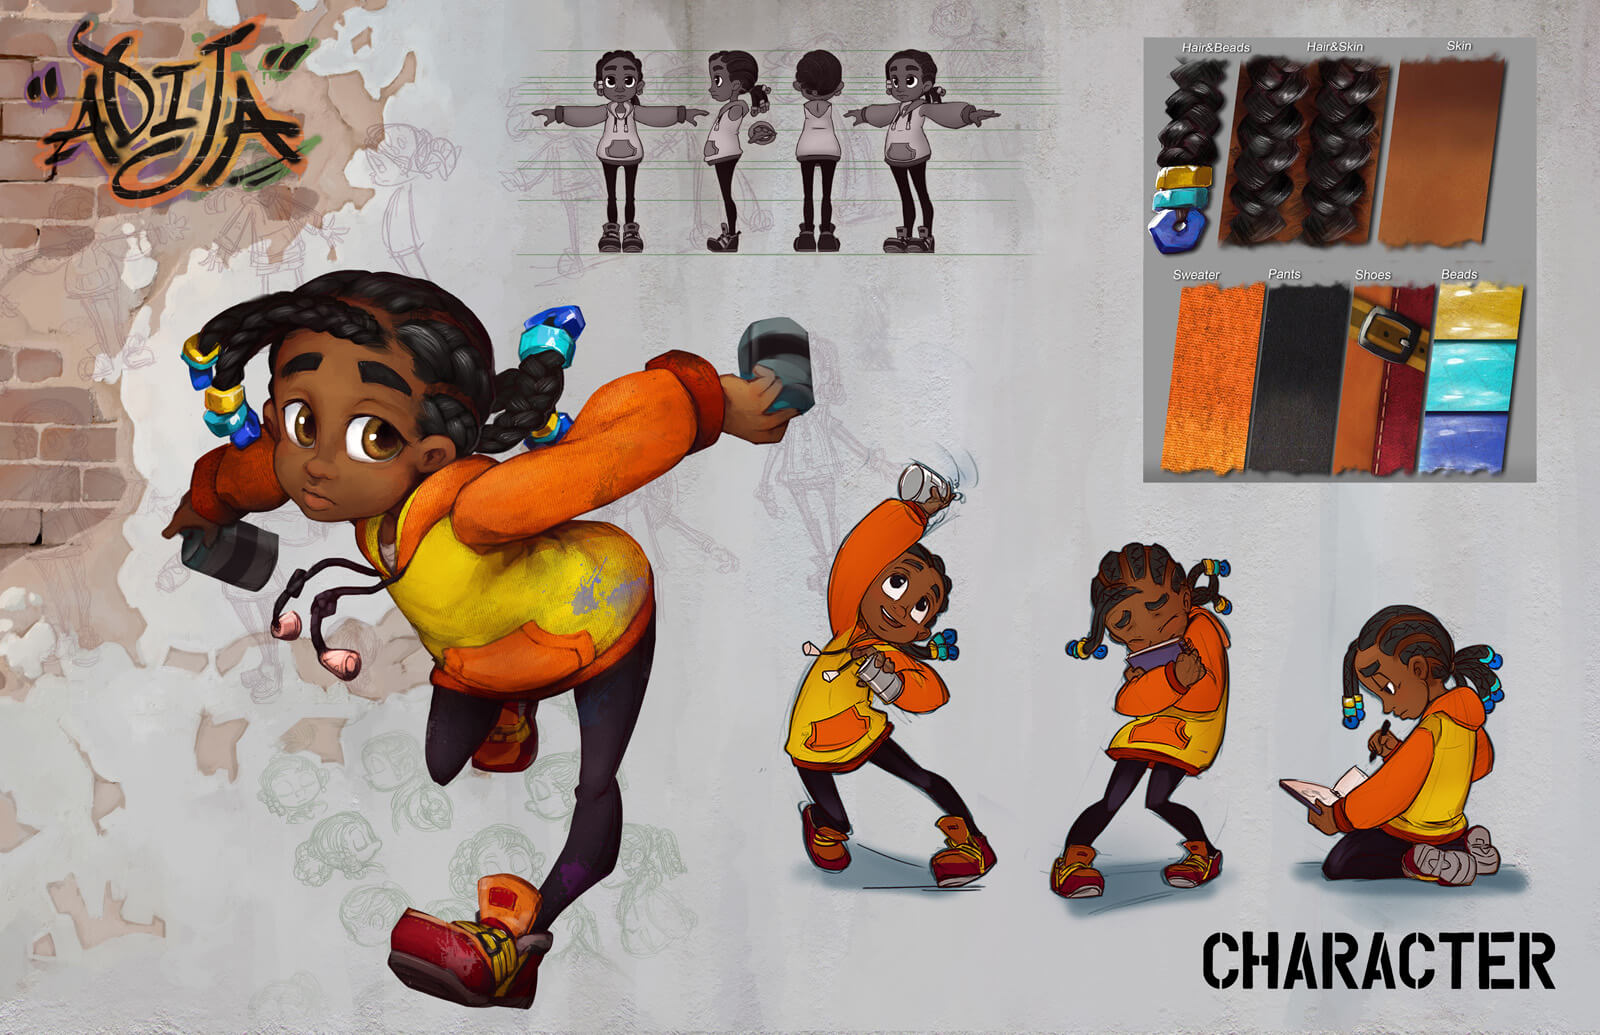 Character design sheet for the film Adija, showing several versions of the young protagonist and detail of her apparel